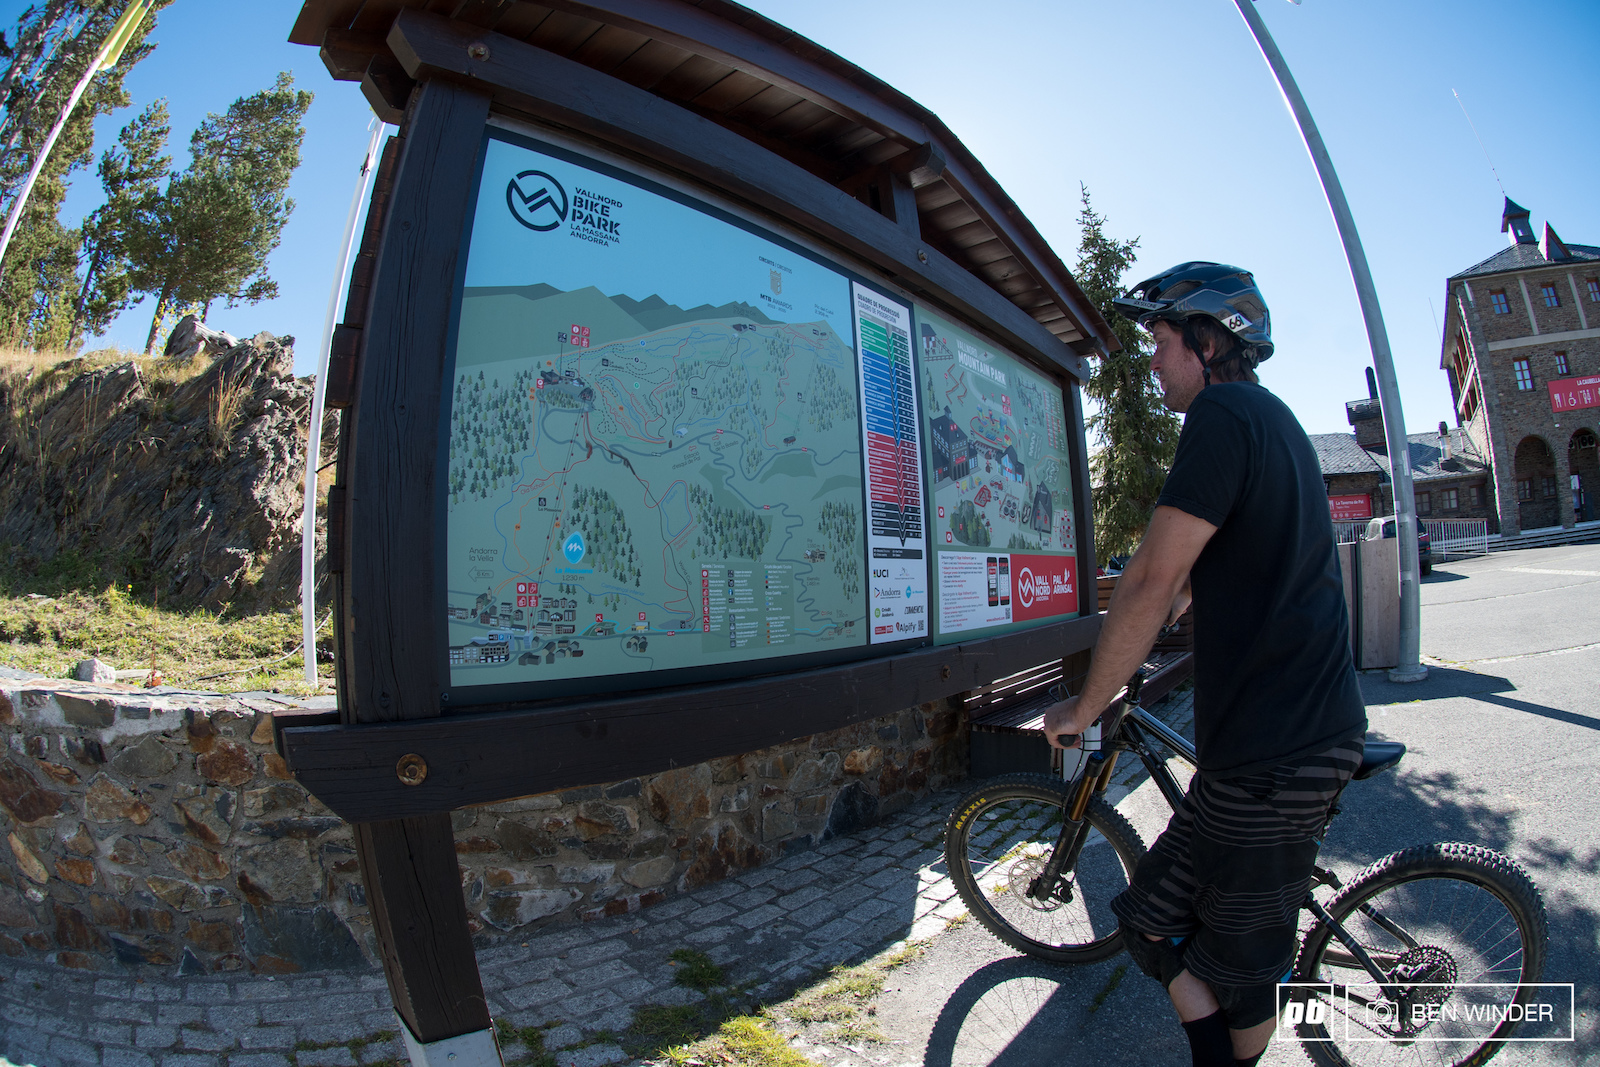 The trail maps are well documented and easy to follow.